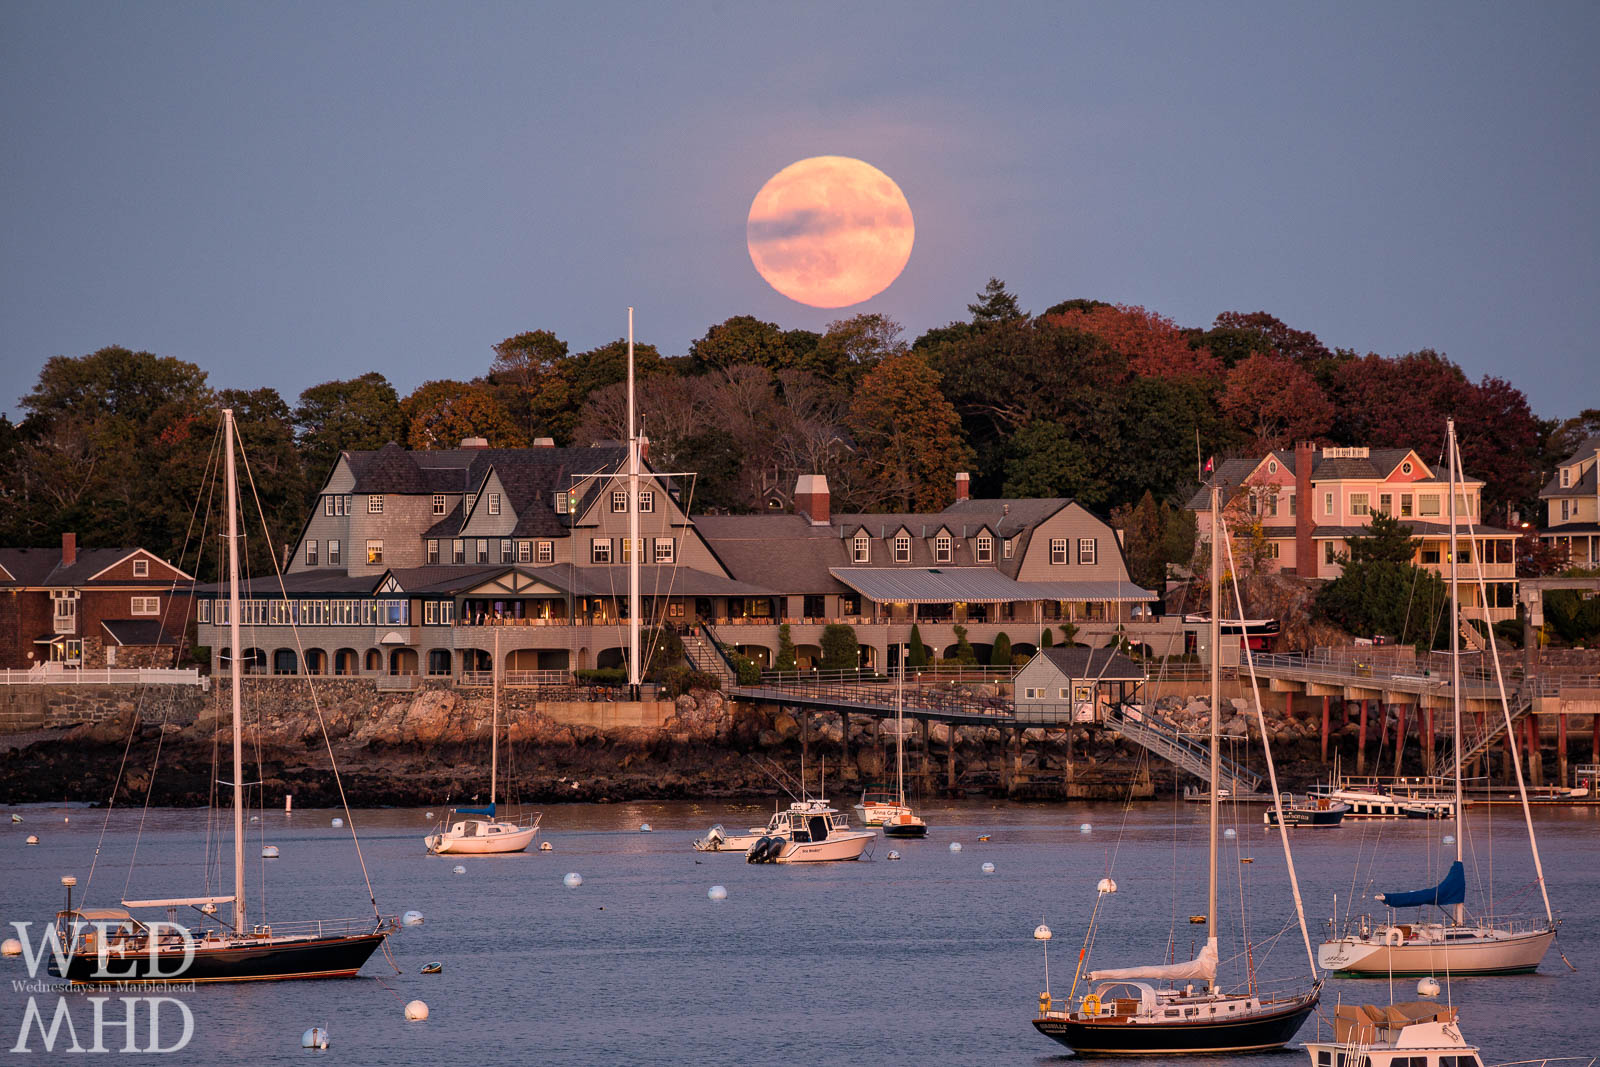 The Hunter moon rises over the Corinthian Yacht Club with hints of foliage in the trees and boats still moored in the harbor